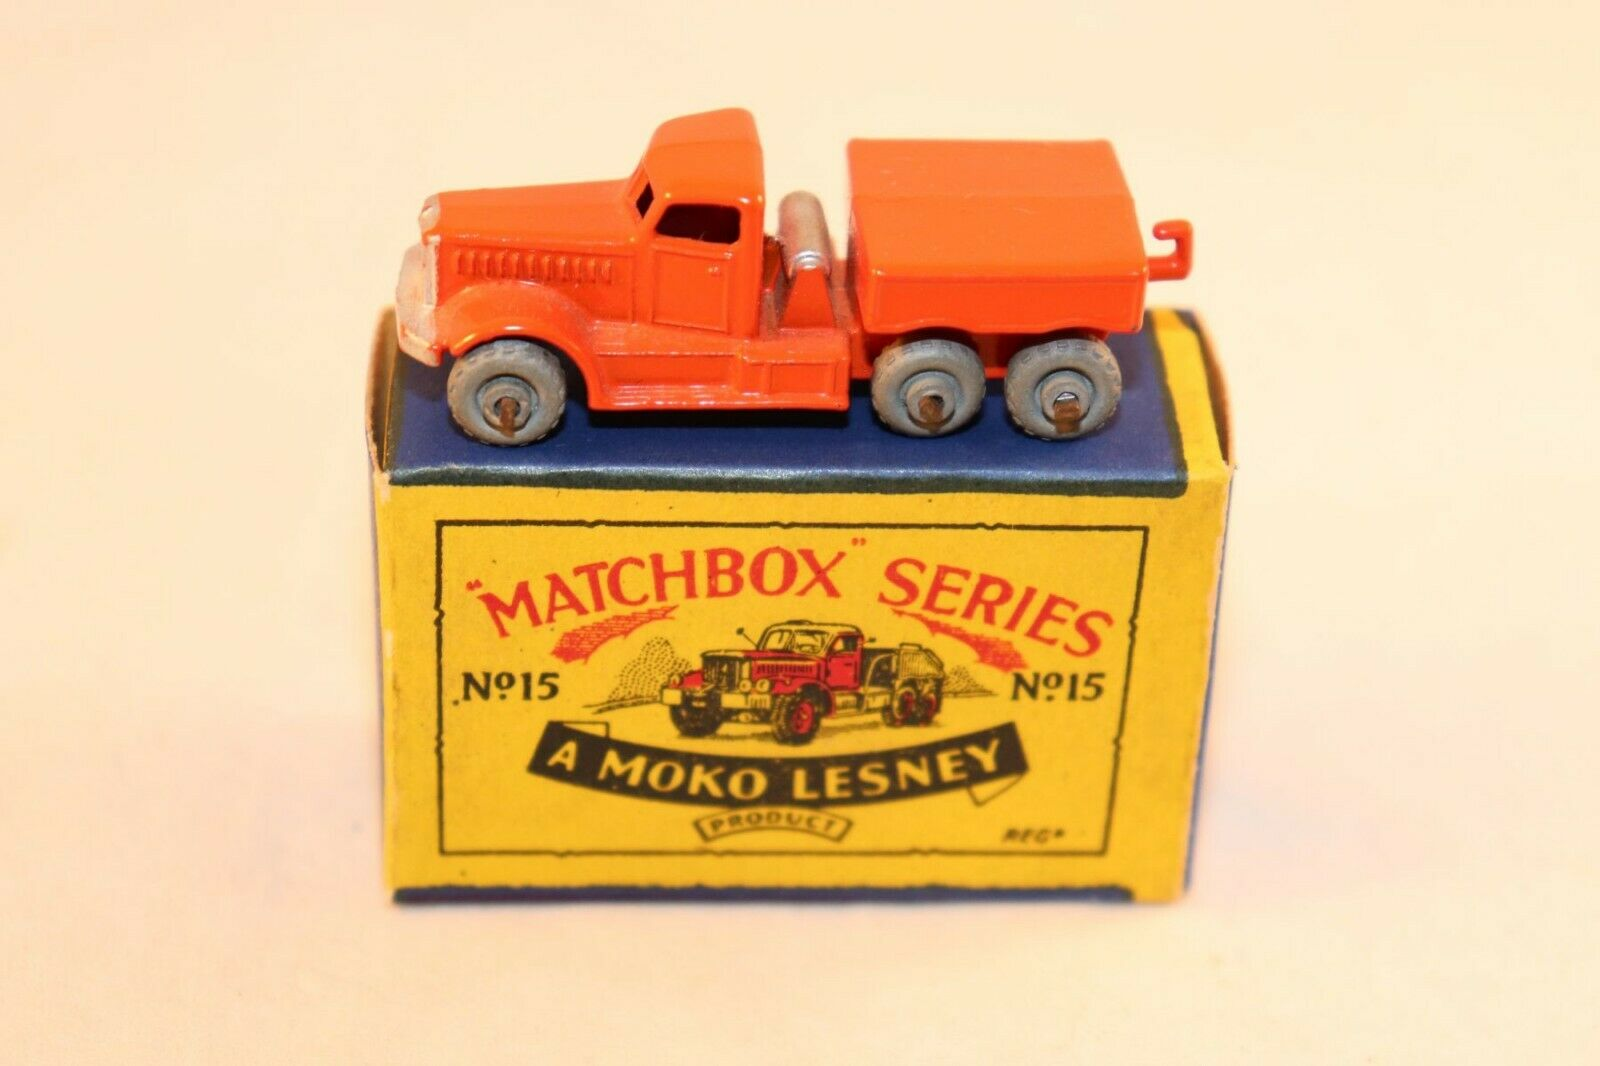 Matchbox Lesney No 15 Prime Mover mint in box all original condition GMW